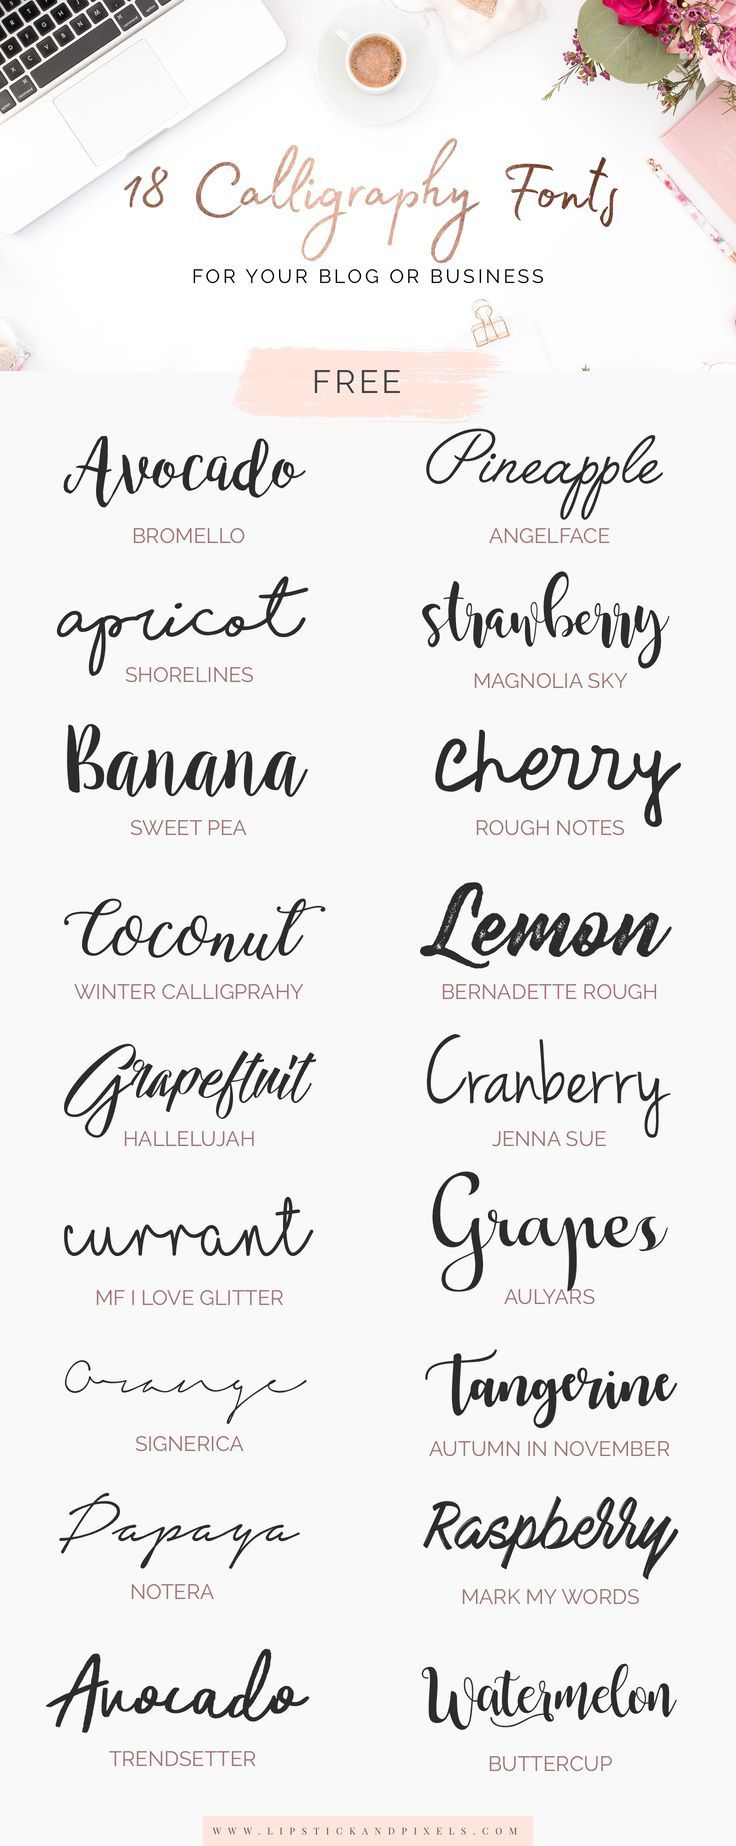 Free illustration g typography font font name free image on - 18 Free Calligraphy Fonts For Your Blog Or Business